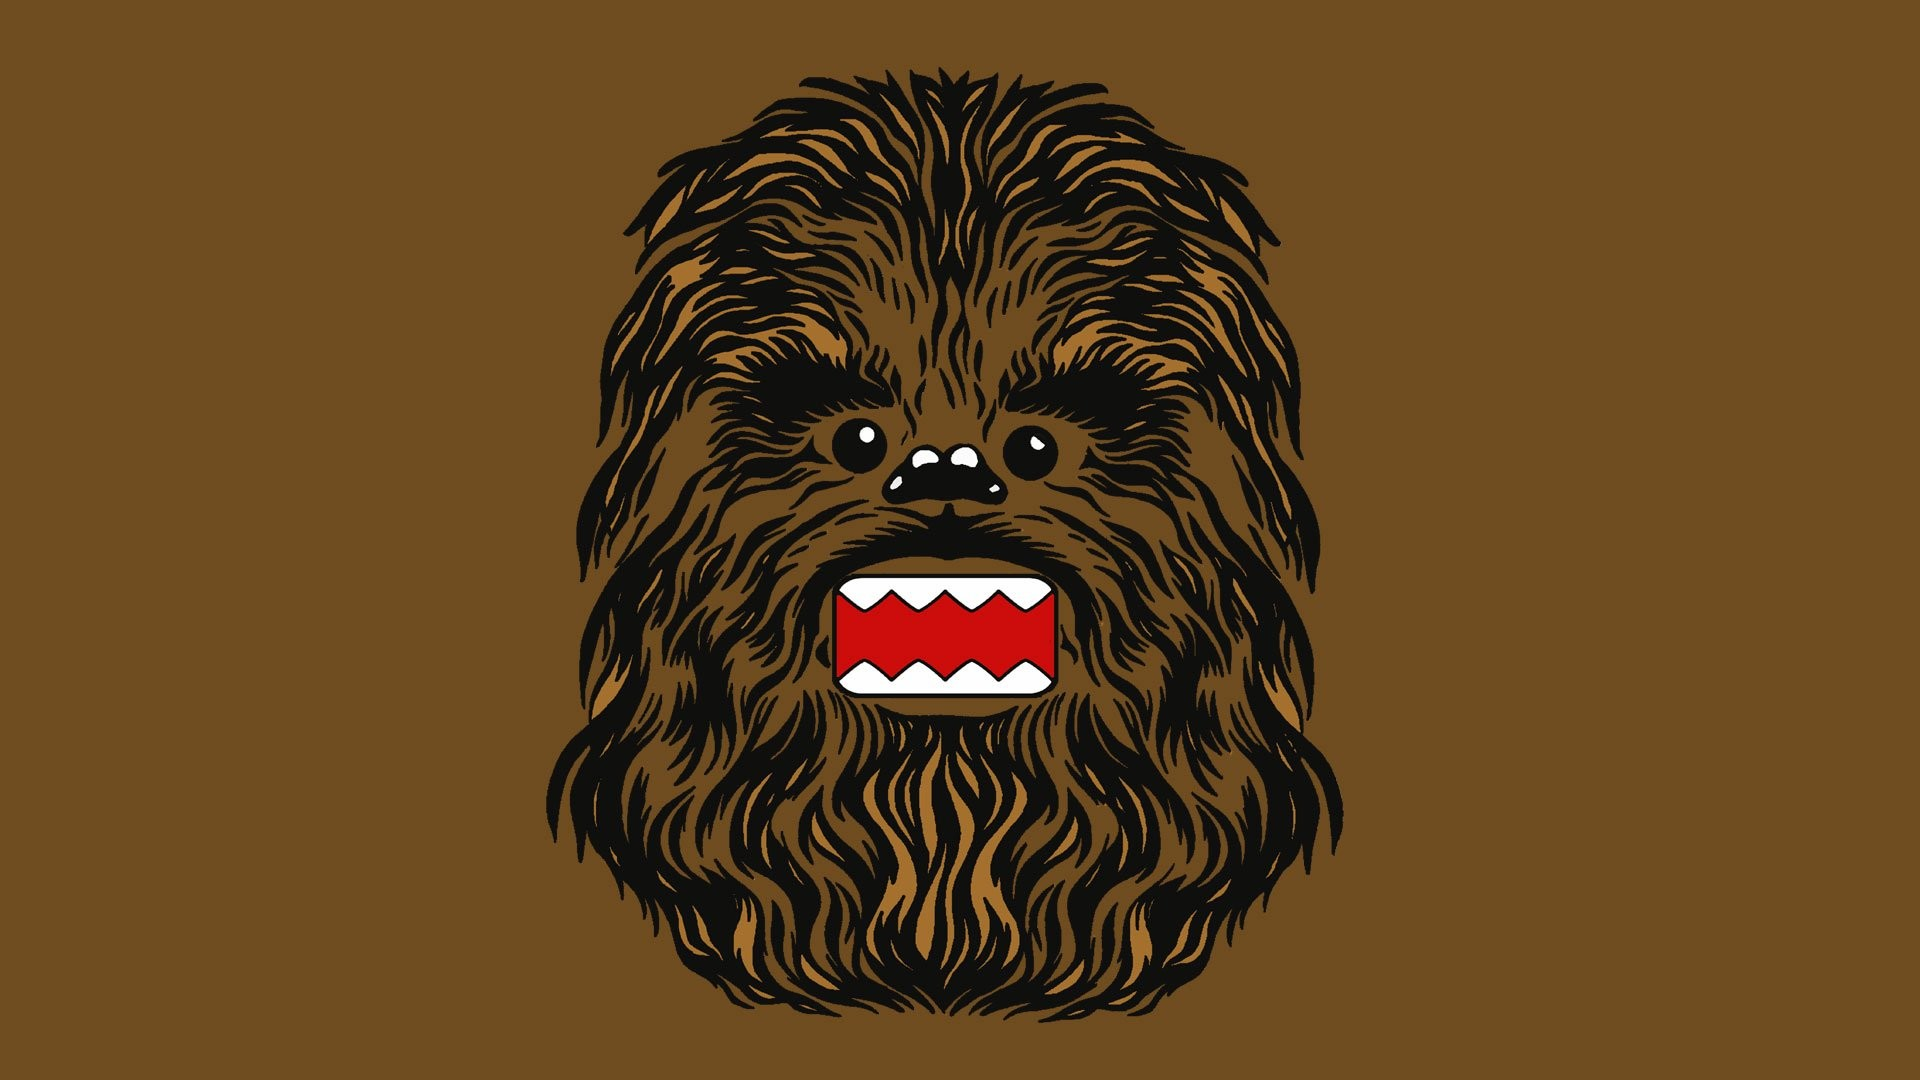 Chewbacca Wallpaper 70 Images